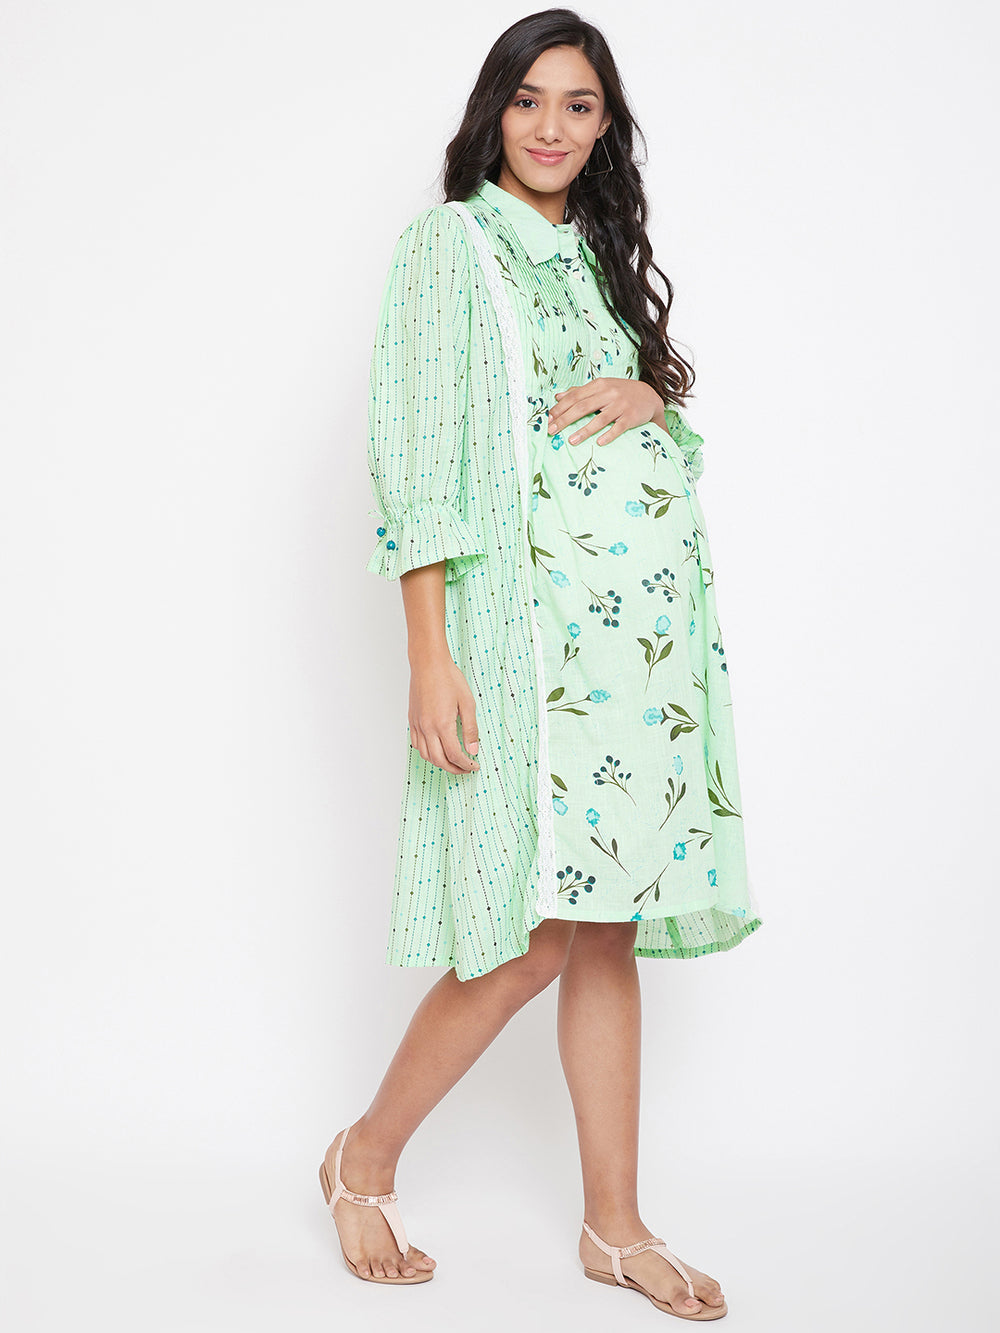 MINT FLORAL MATERNITY DRESS WITH PIN TUCKS AND BUTTON PLACKET